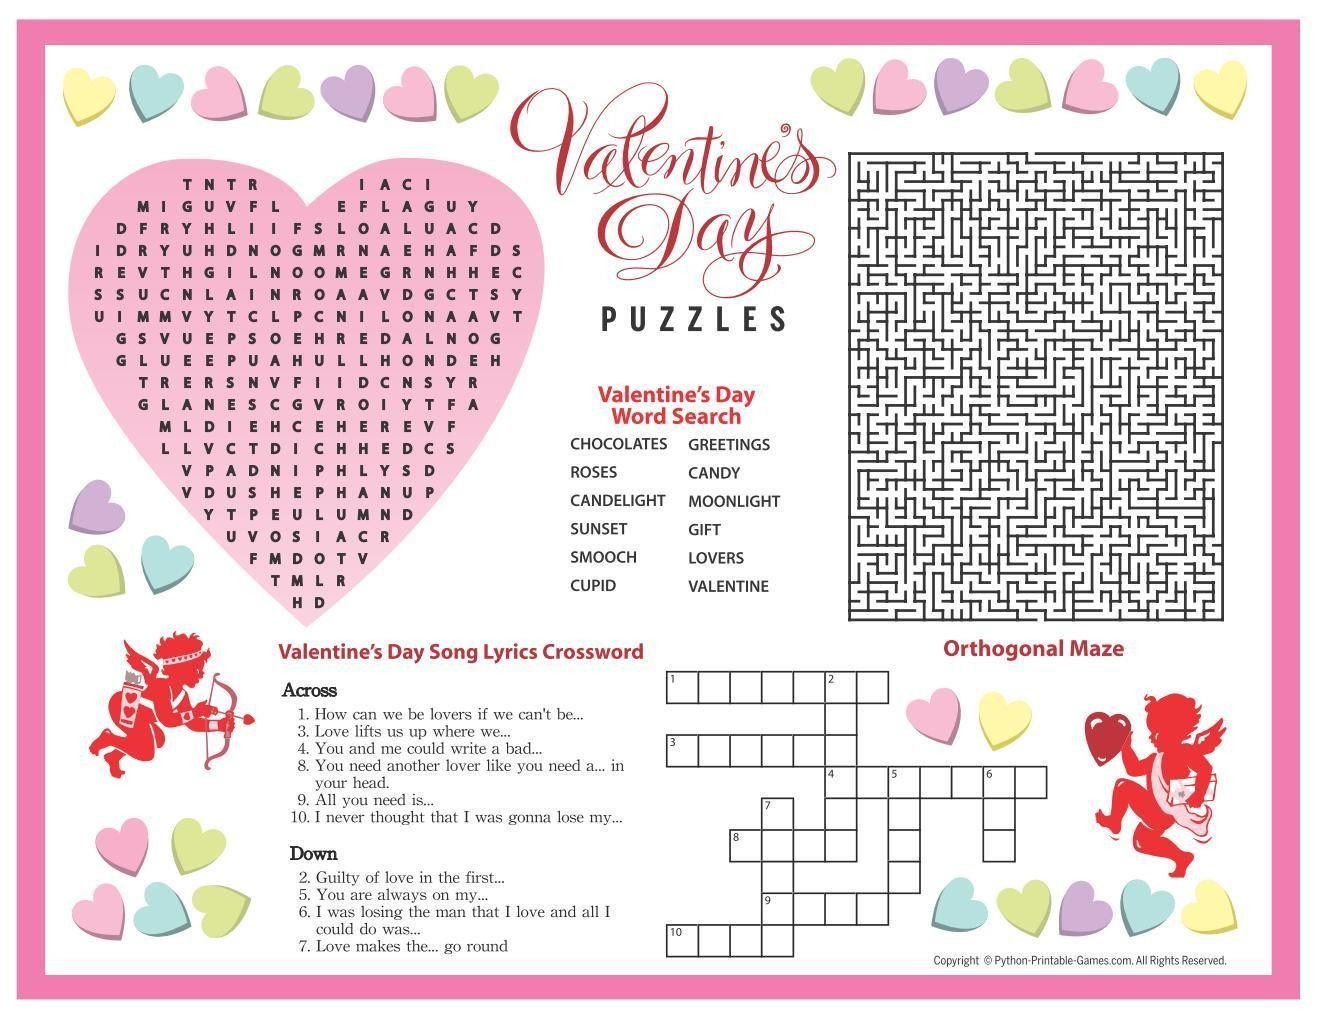 photograph regarding Valentine's Day Crossword Puzzle Printable named Valentines Working day: Puzzles